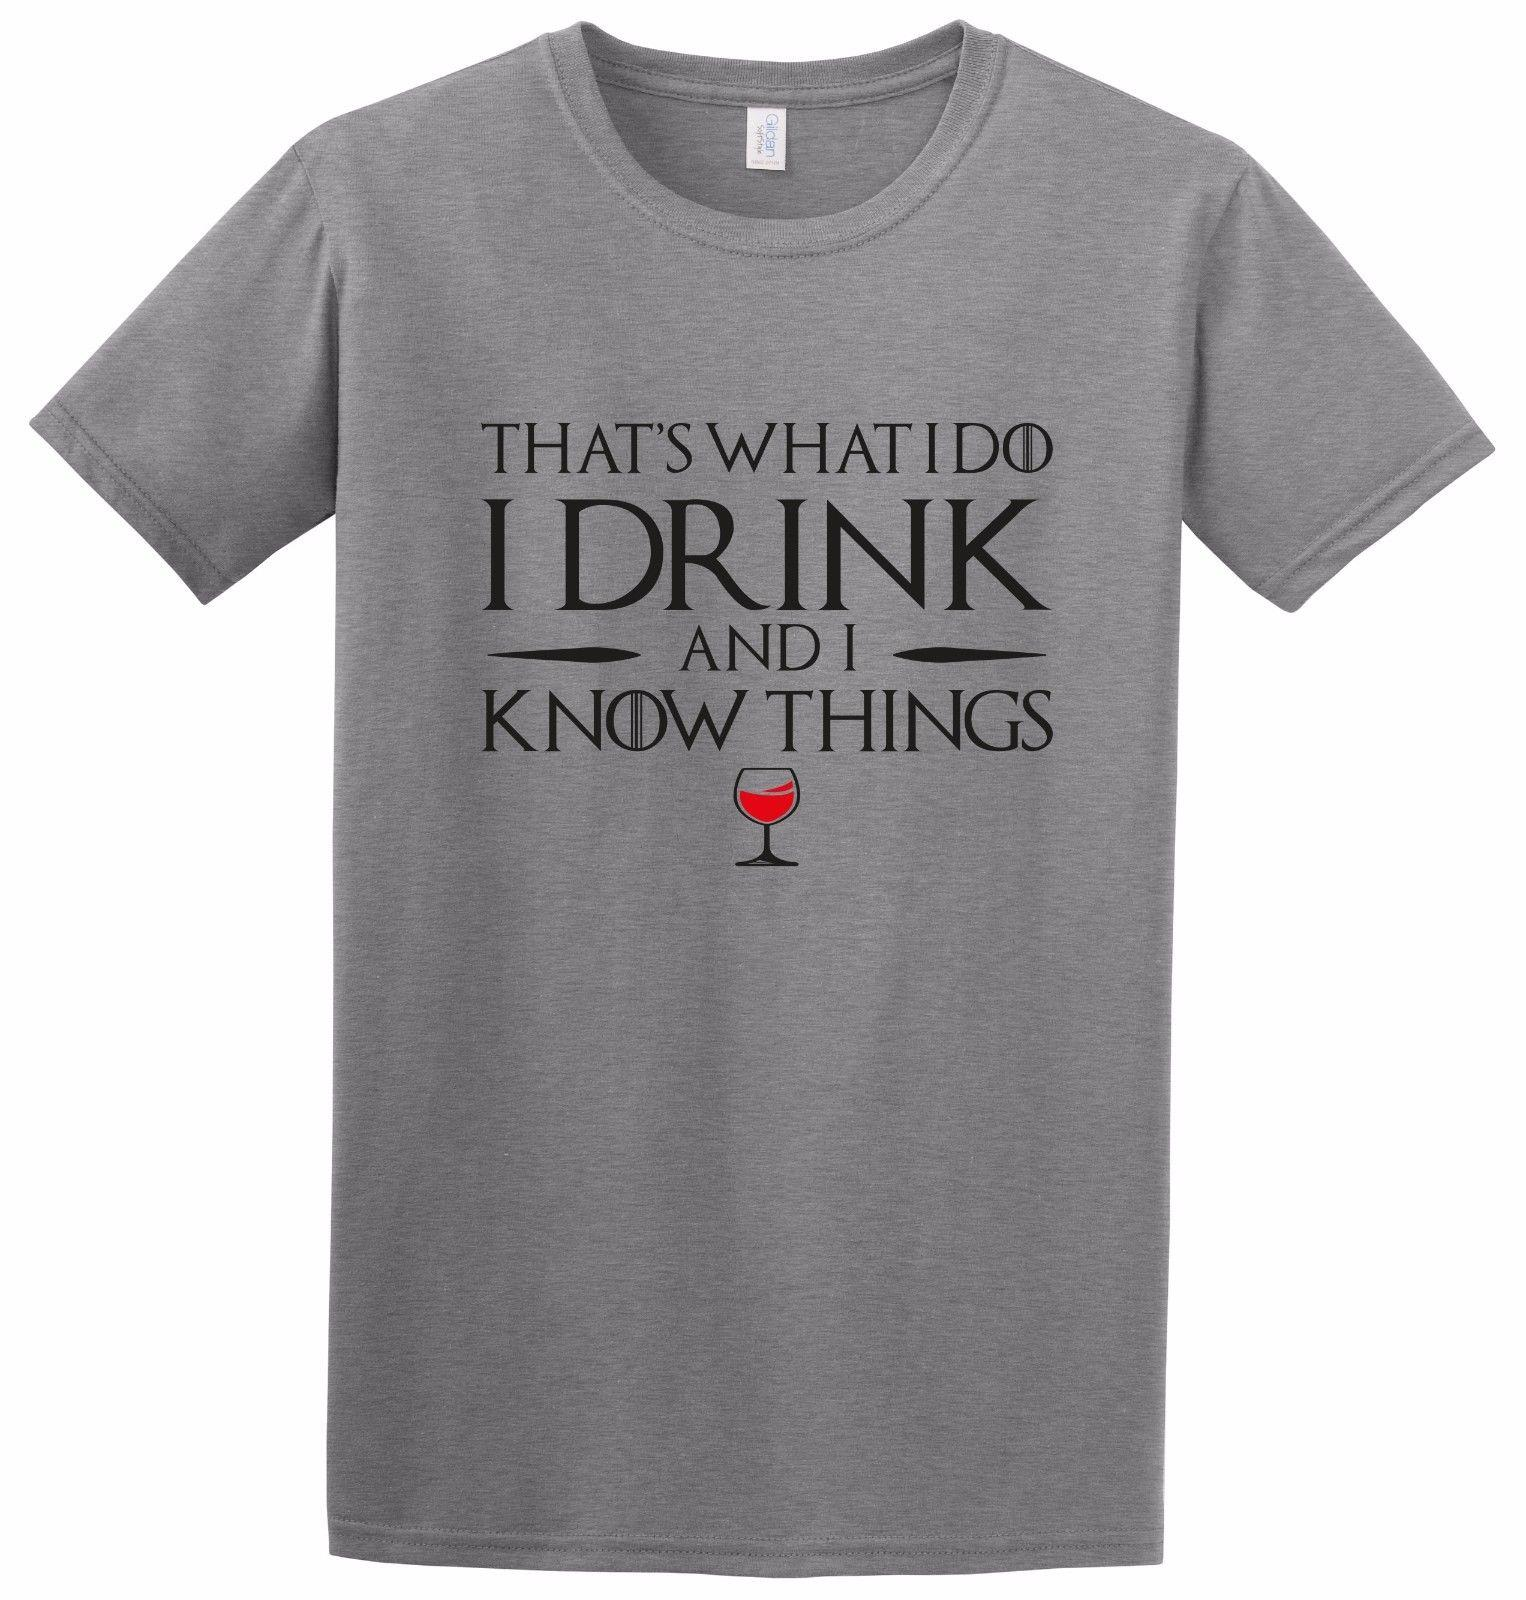 81f60a09 I Drink And I Know Things Game Of Thrones Tyrion Quote Inspired T Shirt  Funny Tshirt Top Trendy Mens T Shirts T Shirt Best From Mvptshirt, $12.96   DHgate.